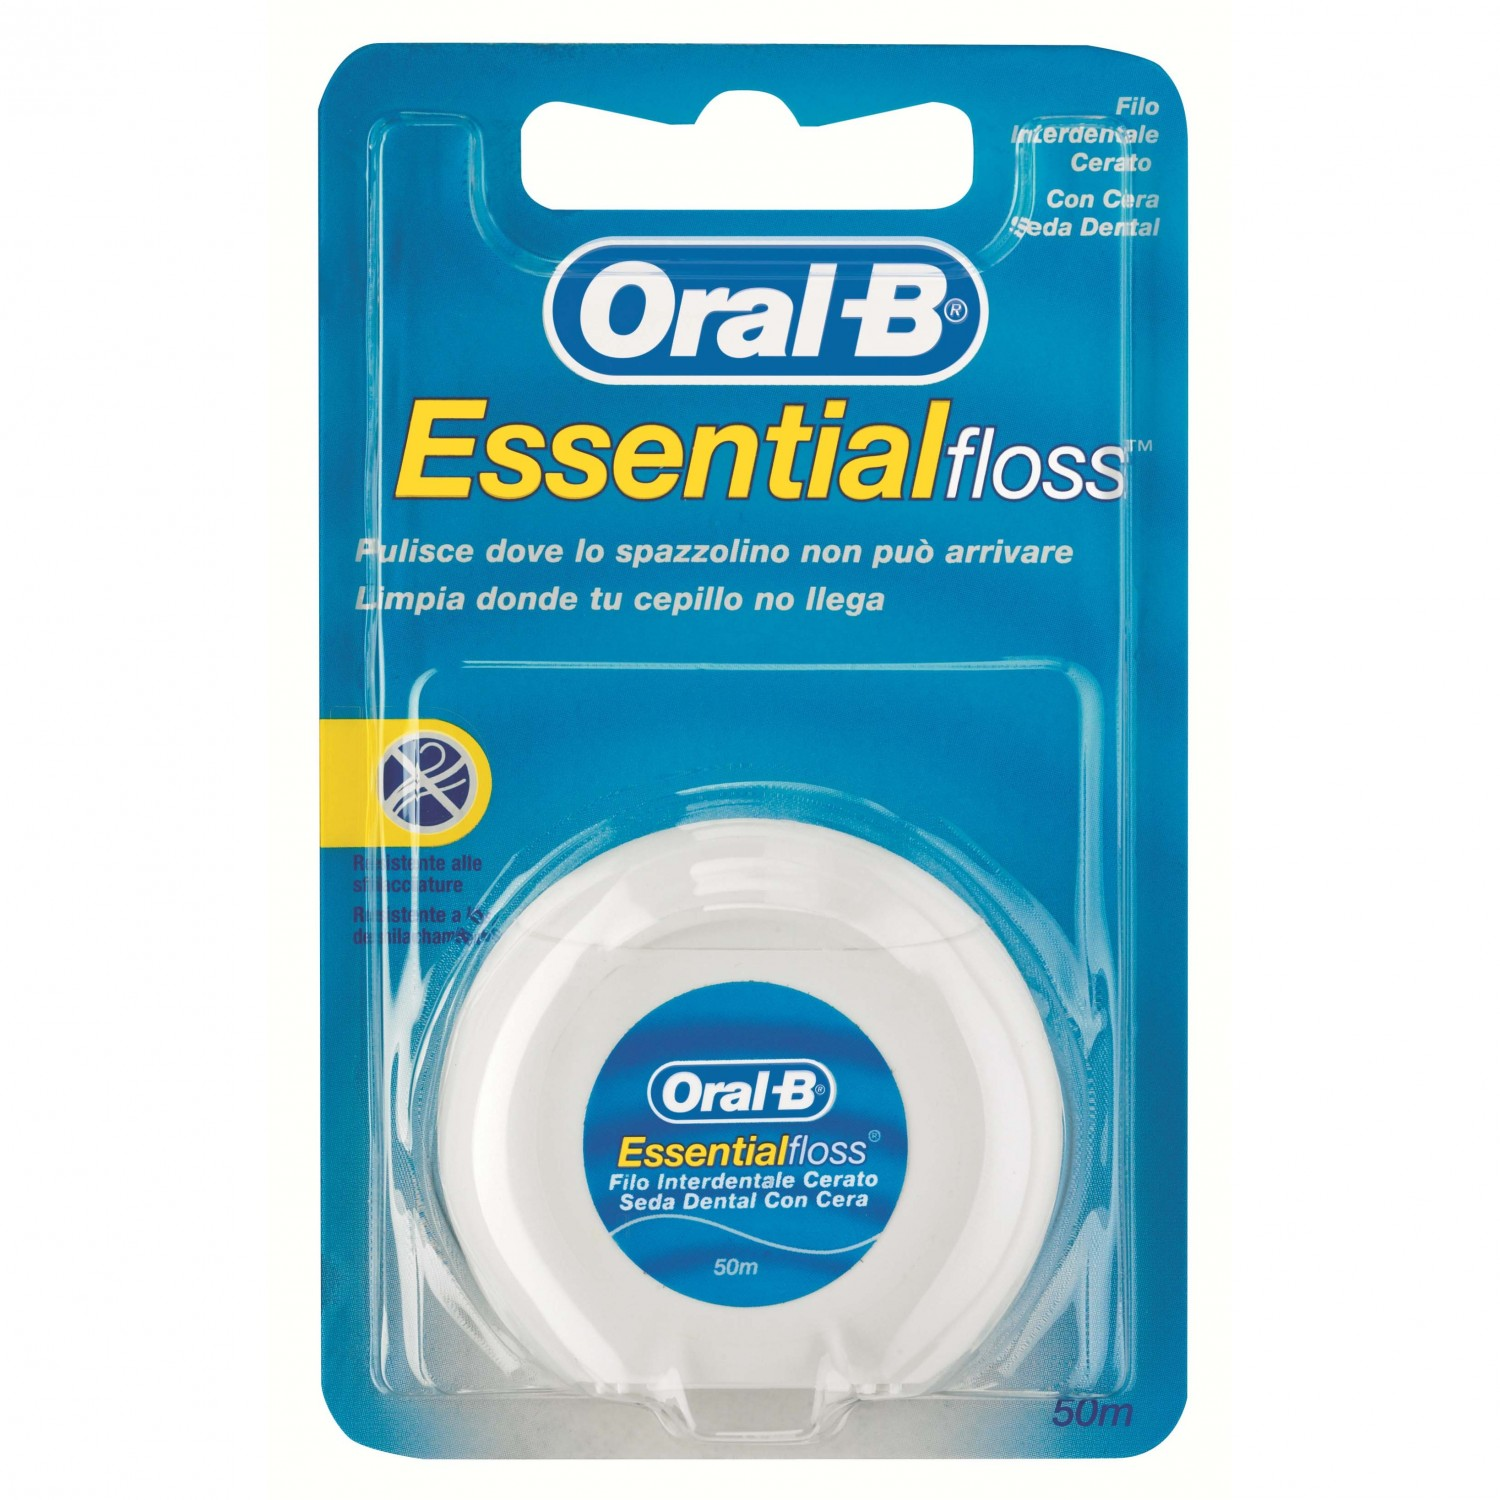 Oral B seda dental essential floss con cera de 50m. en caja